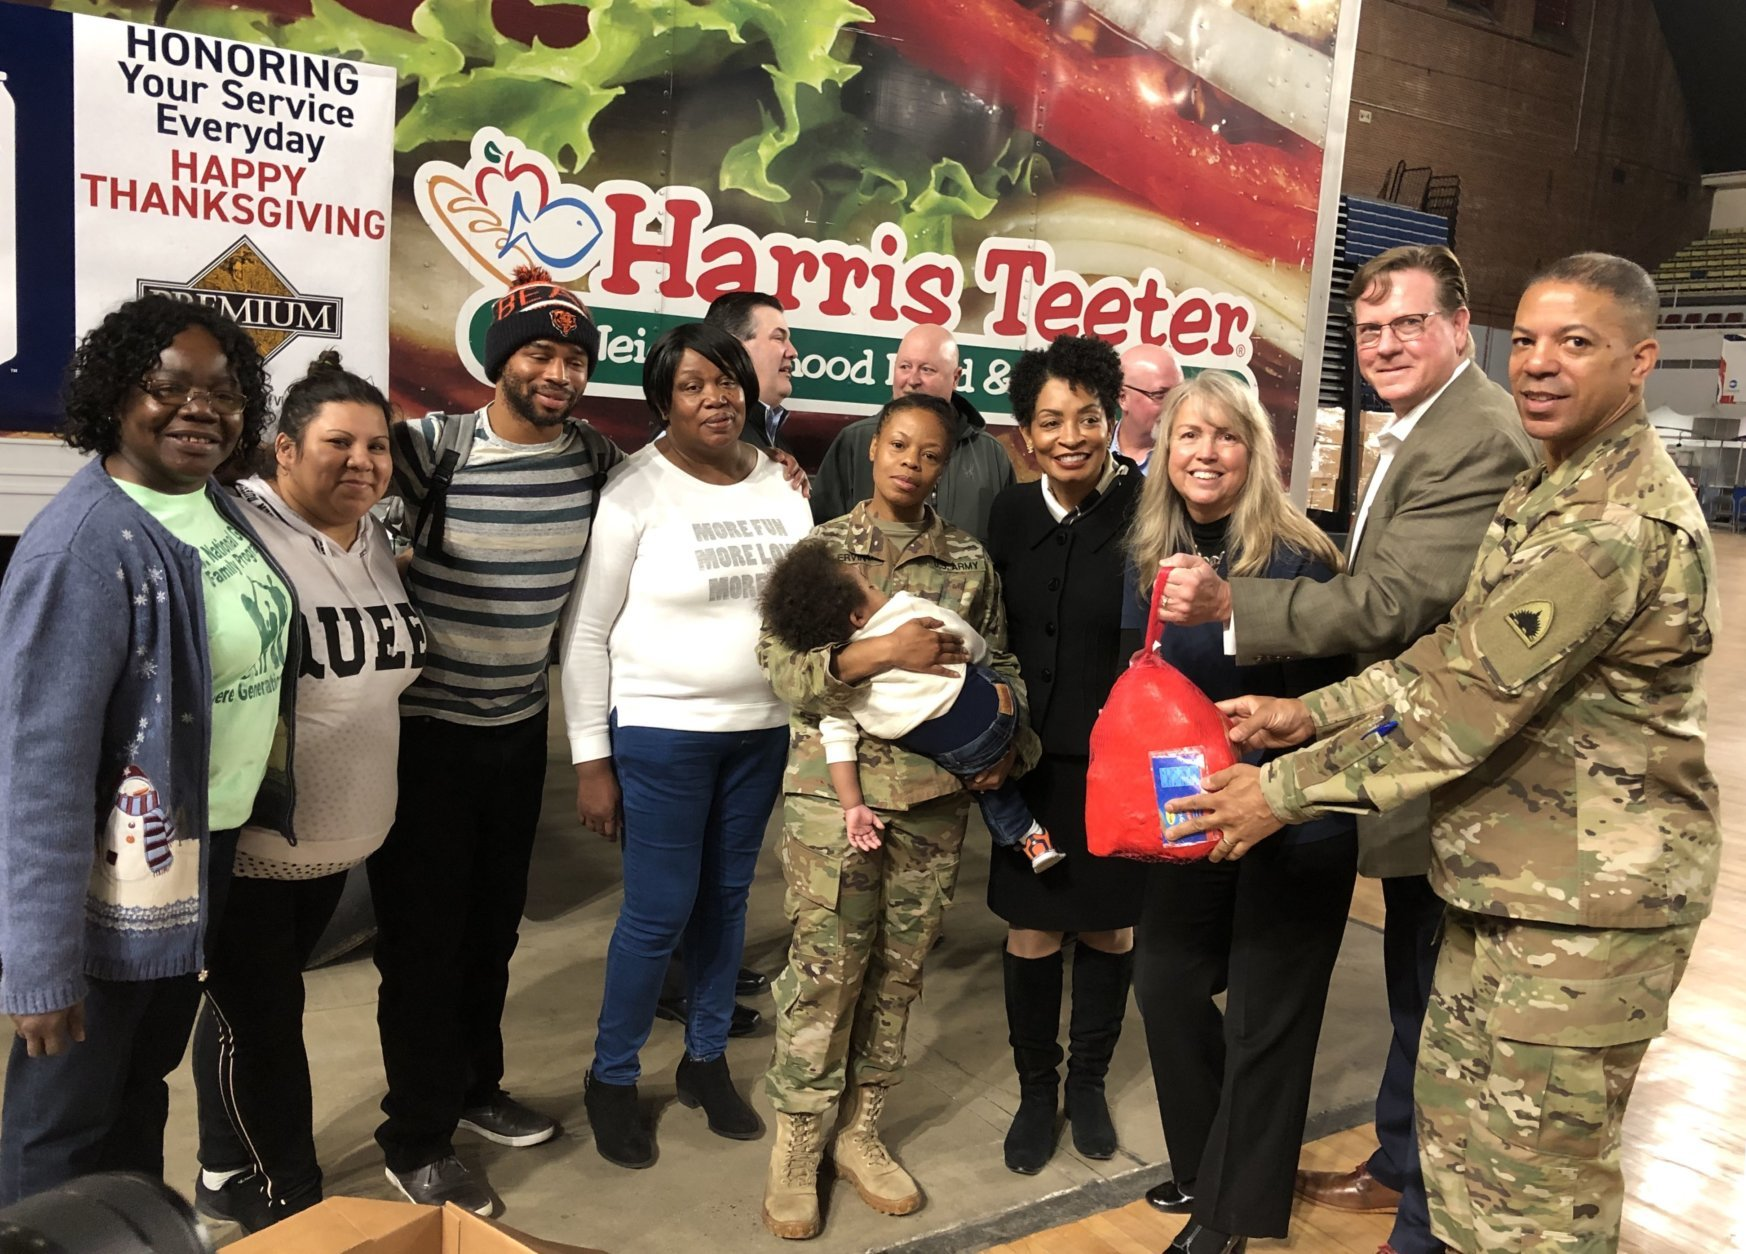 Operation Homefront distributed 400 holiday meals to military families Monday through the Holiday Meals for Military program. (WTOP/Kristi King)